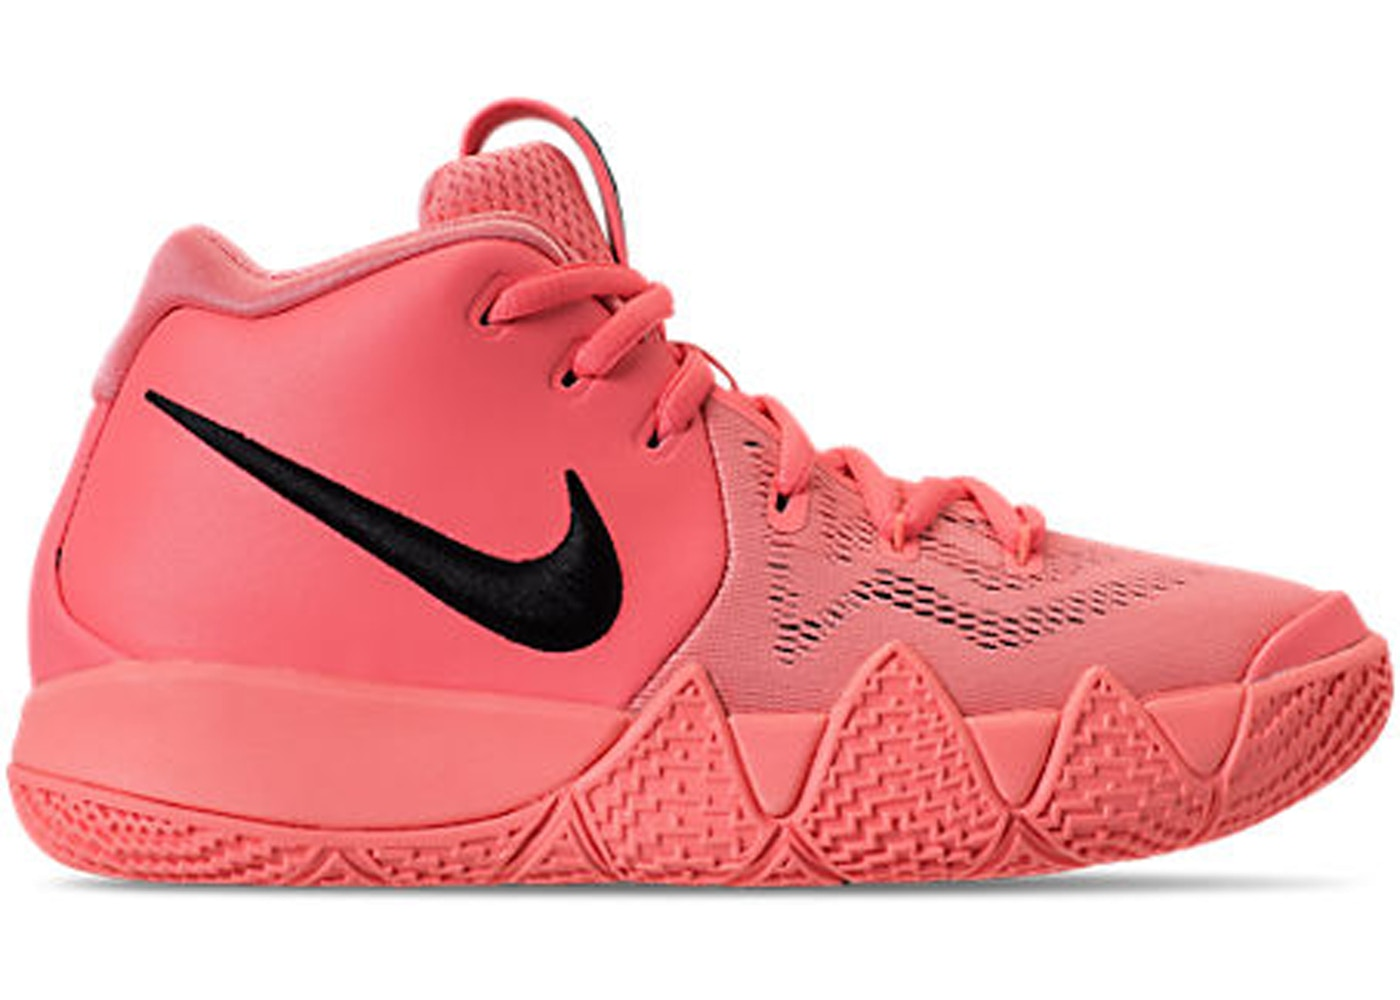 bb359f191636 Kyrie 4 Atomic Pink (GS) - AA2897-601